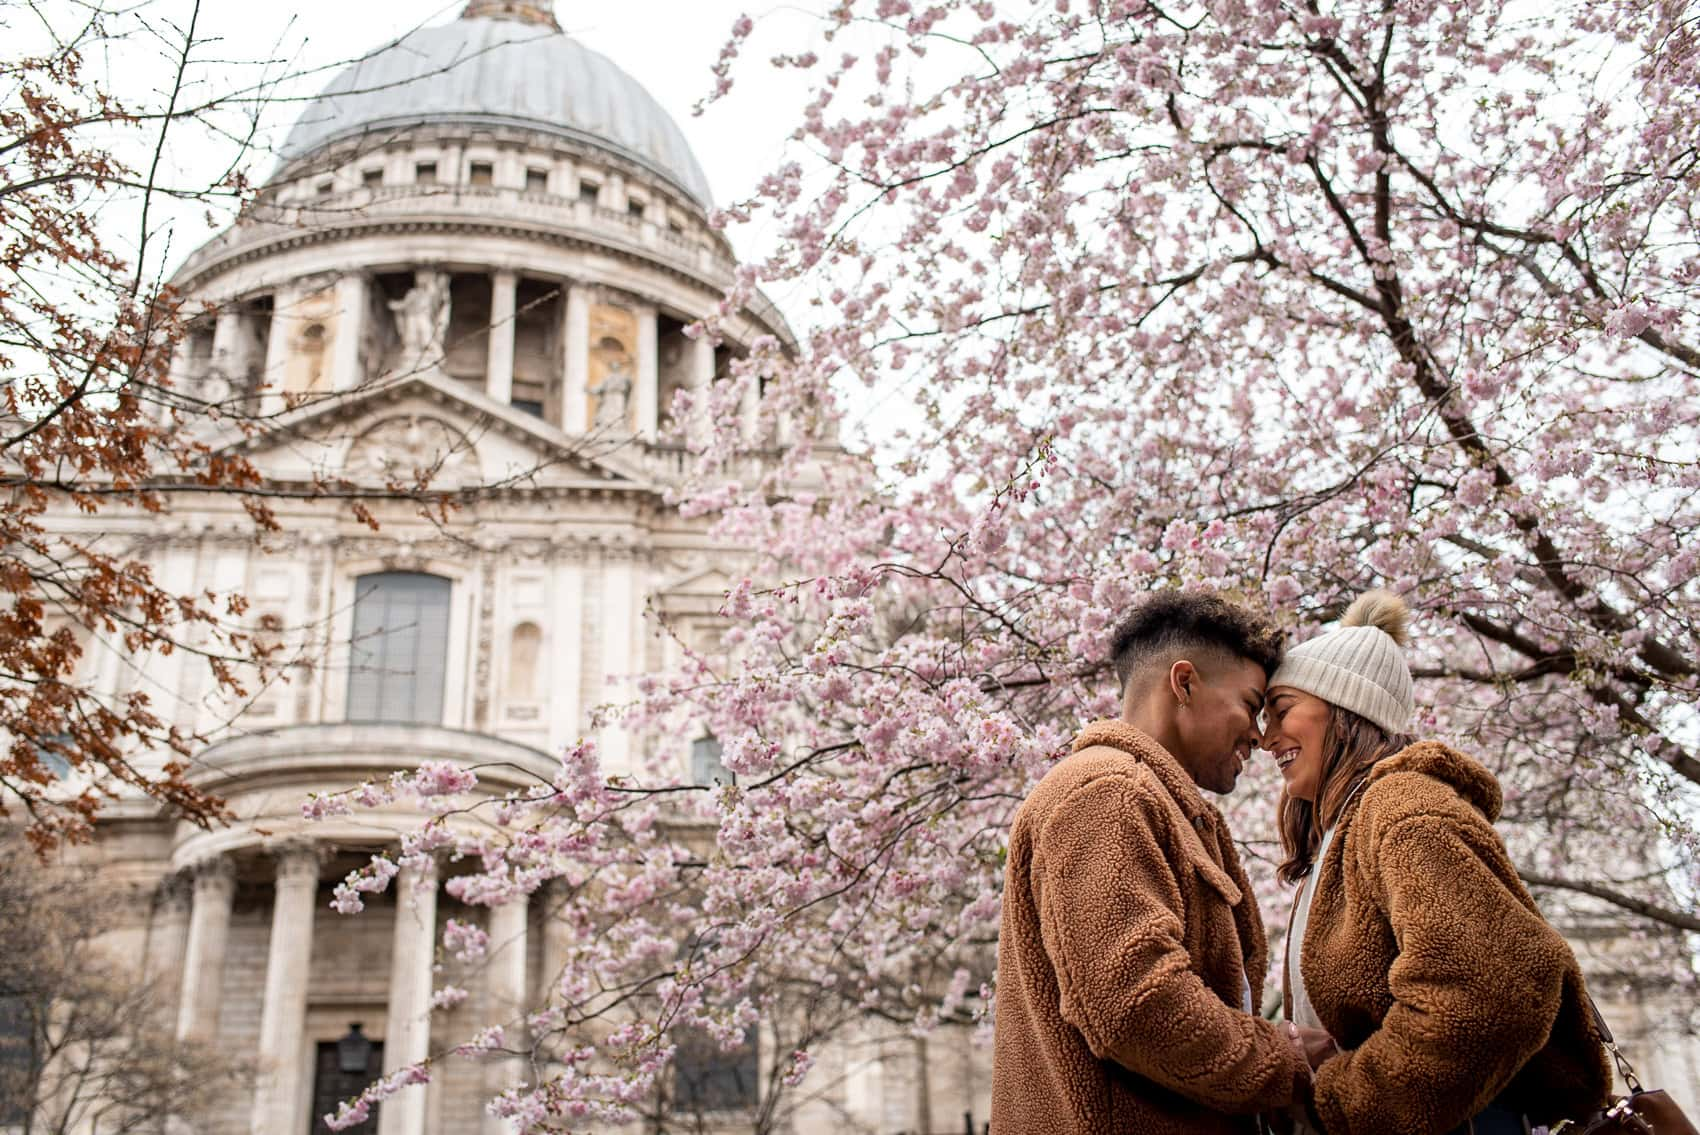 Photo of couple in front of St Pauls Cathedral with Cherry Blossoms in March during their engagement shoot